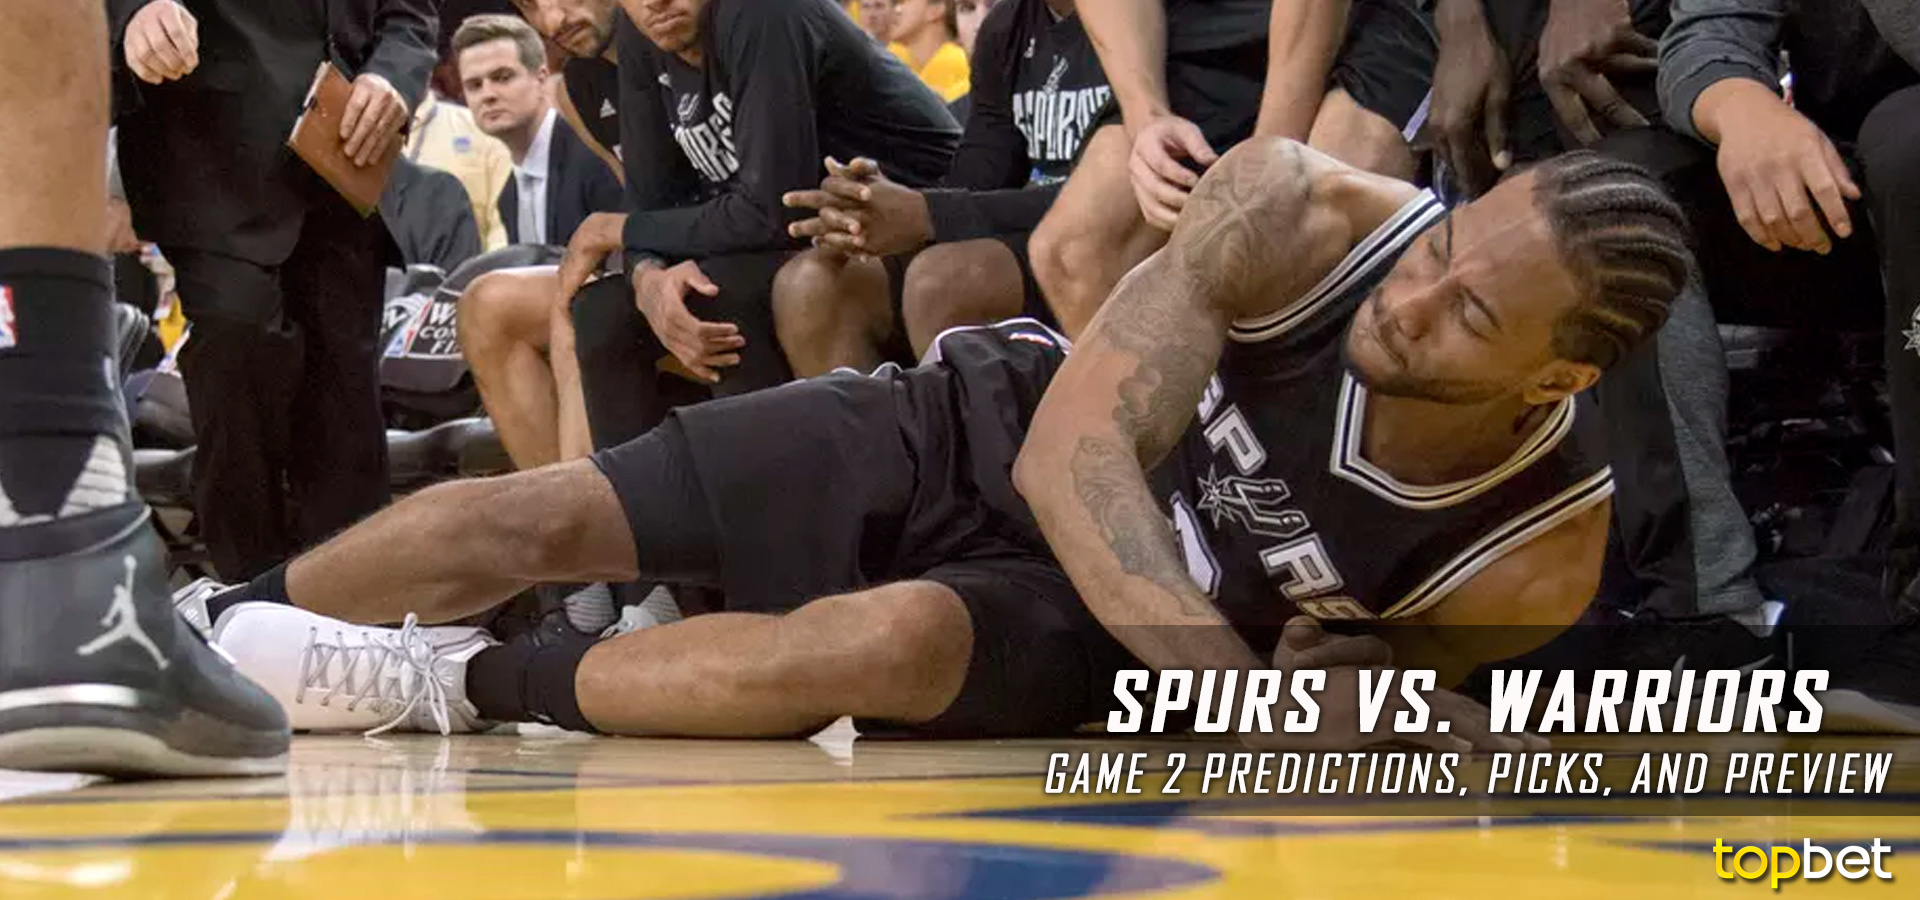 Spurs vs Warriors Series Game 2 Predictions, Picks & Preview